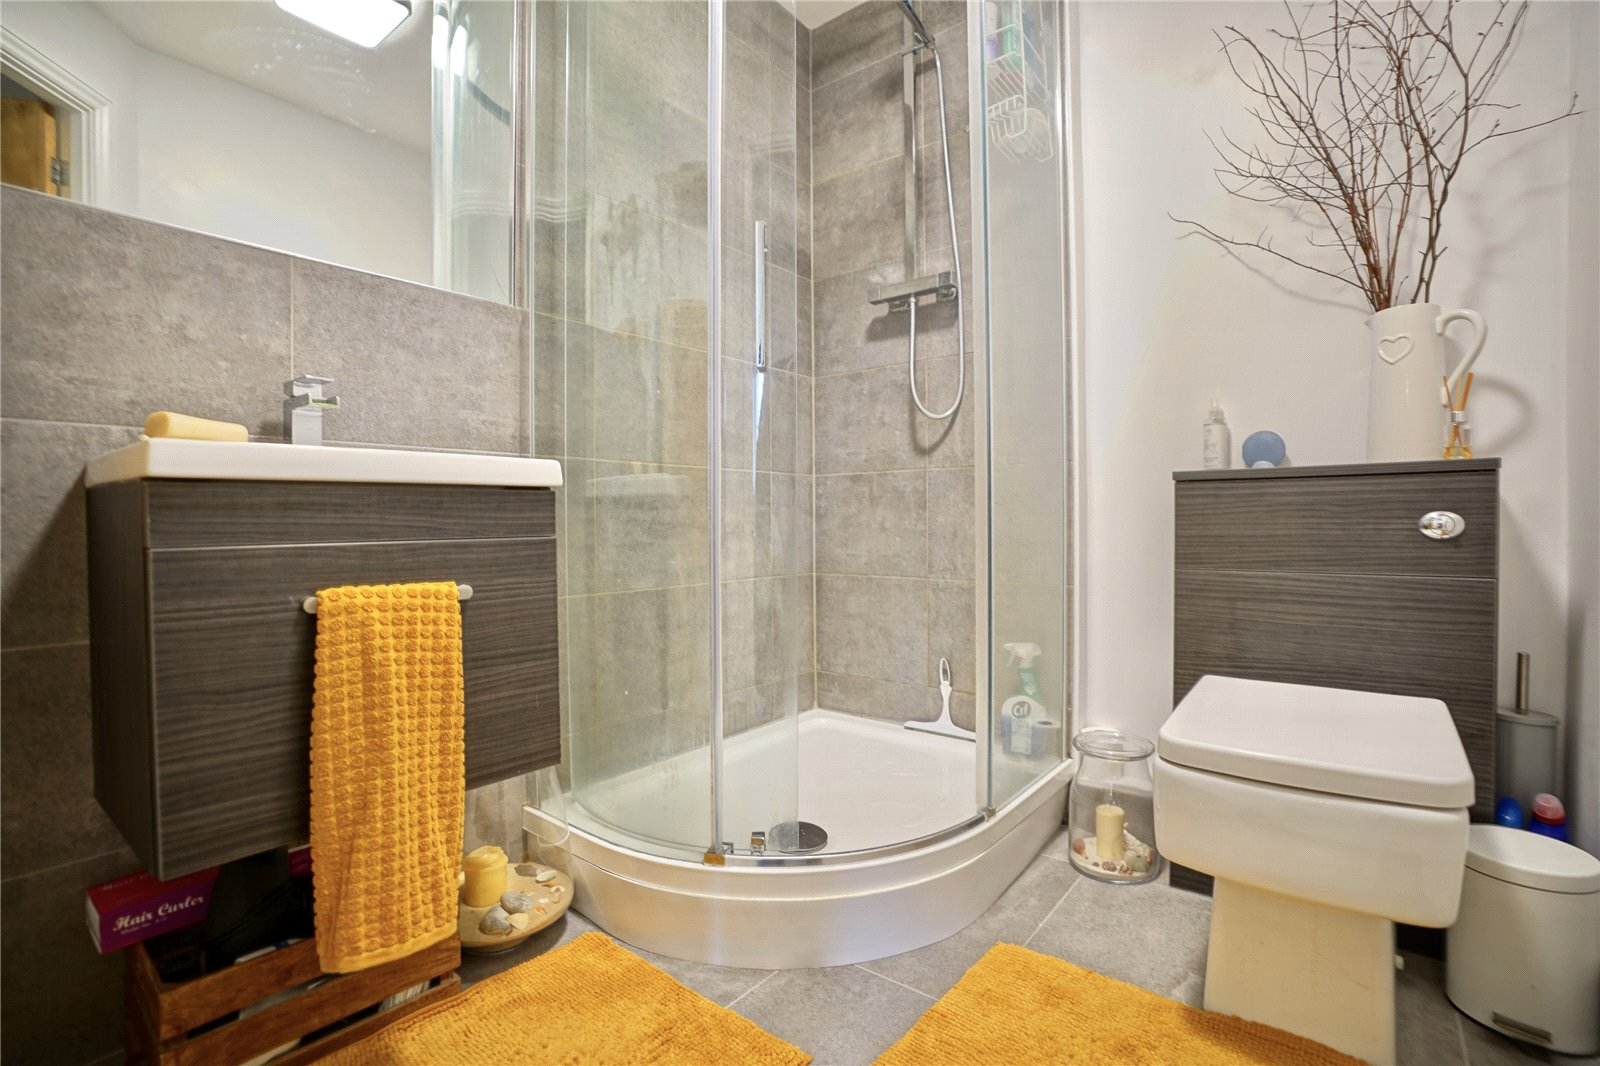 2 bed apartment for sale in St. Ives, PE27 5QL  - Property Image 8